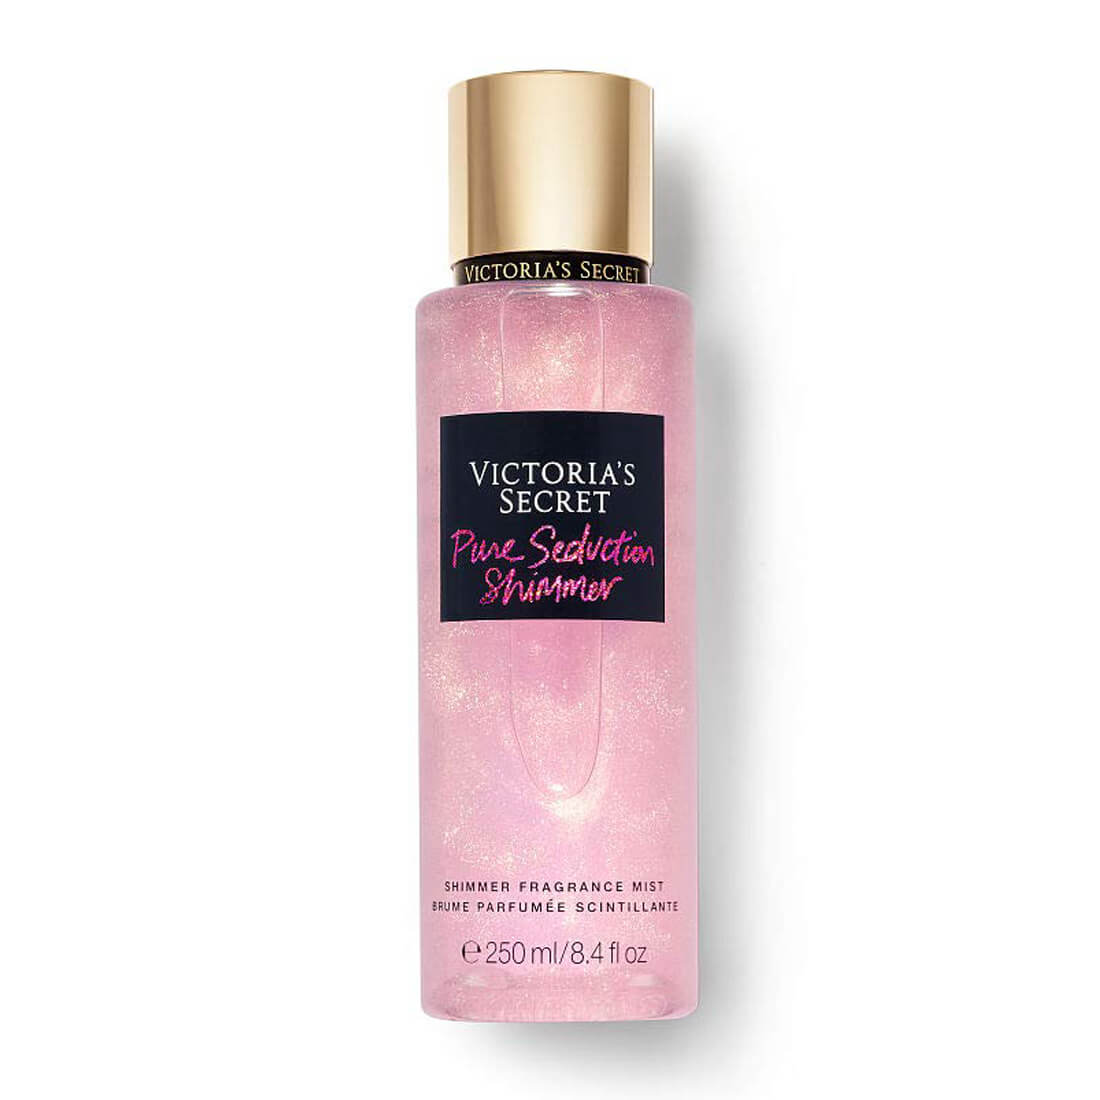 Victoria's Secret Pure Seduction Shimmer Fragrance Mist 250ml